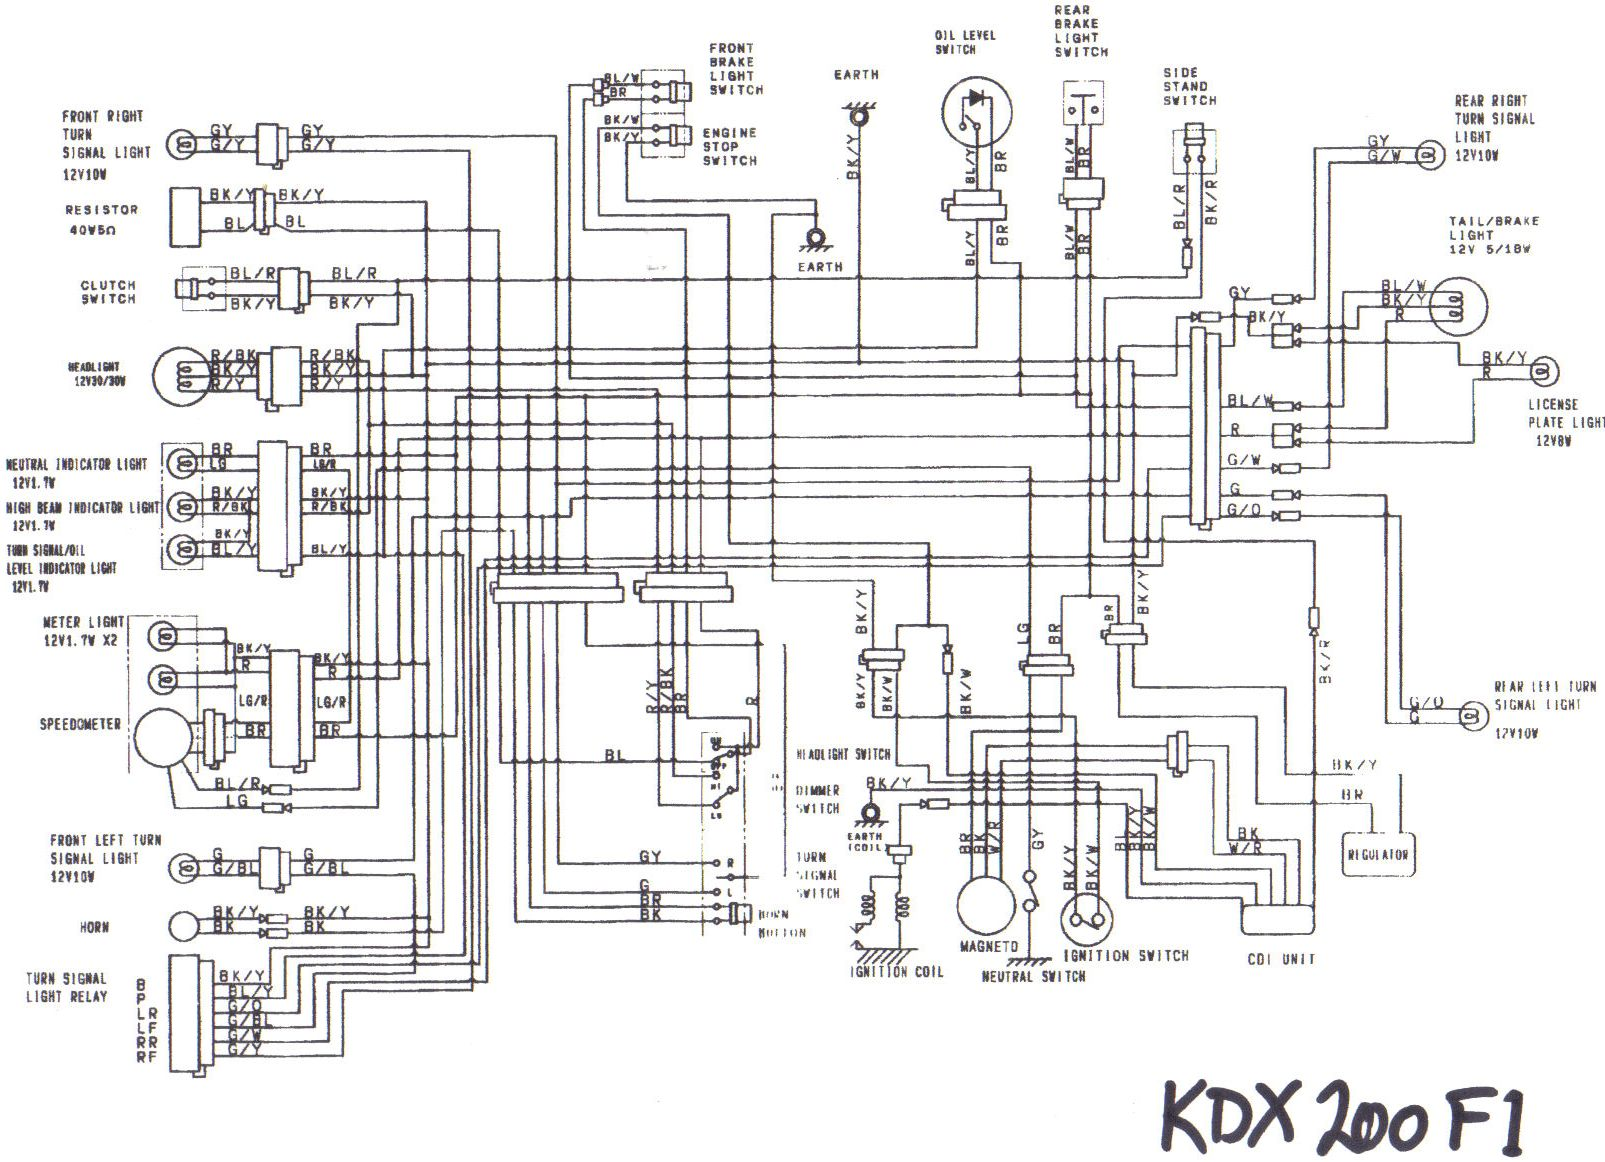 wiring diagram for 2003 kawasaki 650 prairie wiring diagram electrical of kawasaki klt 200 stator issues? - kdxrider.net #12